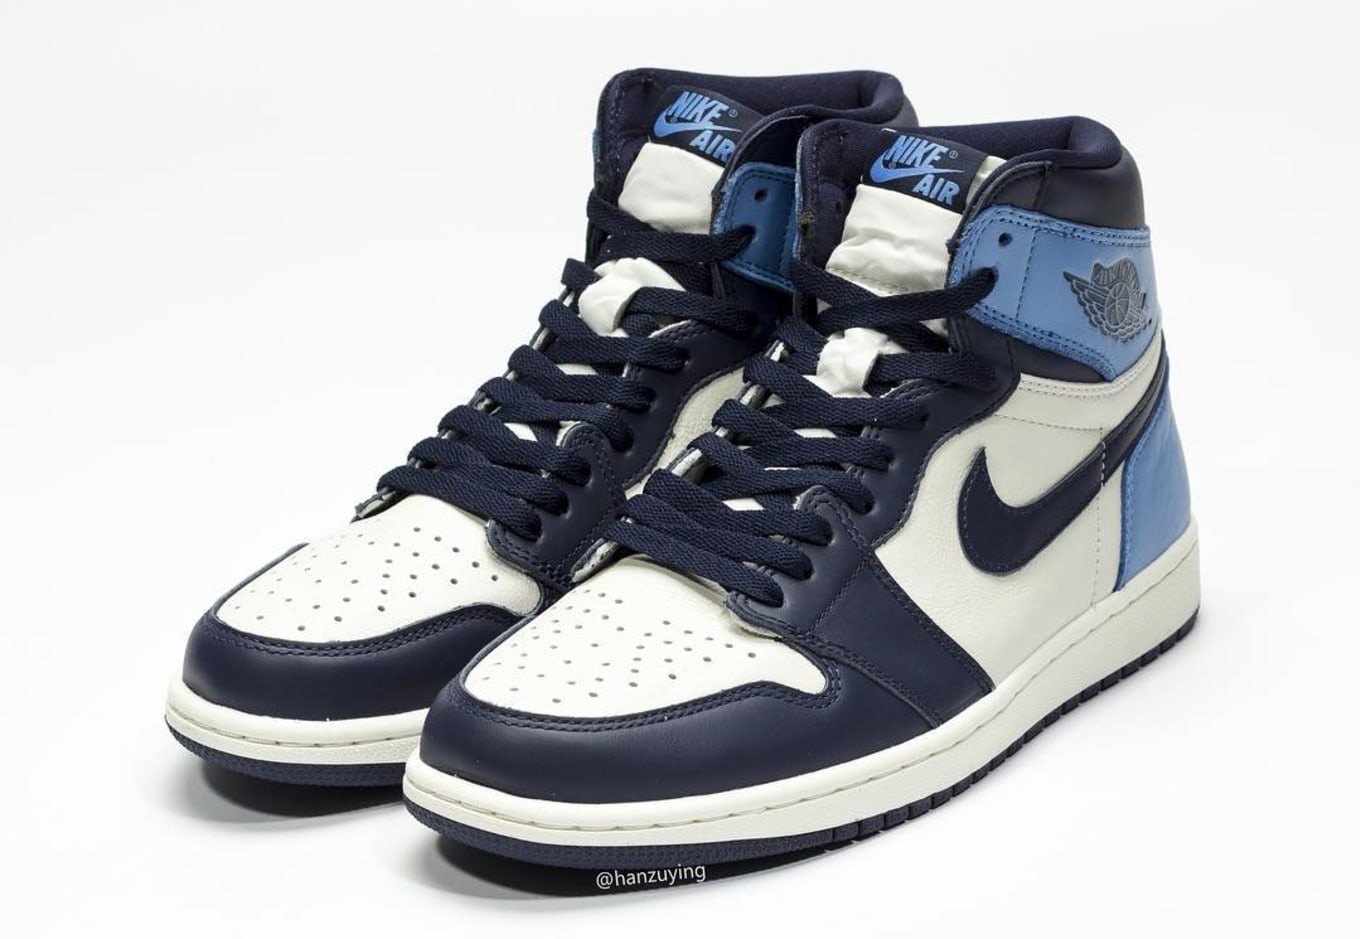 uk availability d3e22 c5b26 Air Jordan 1 (I) High